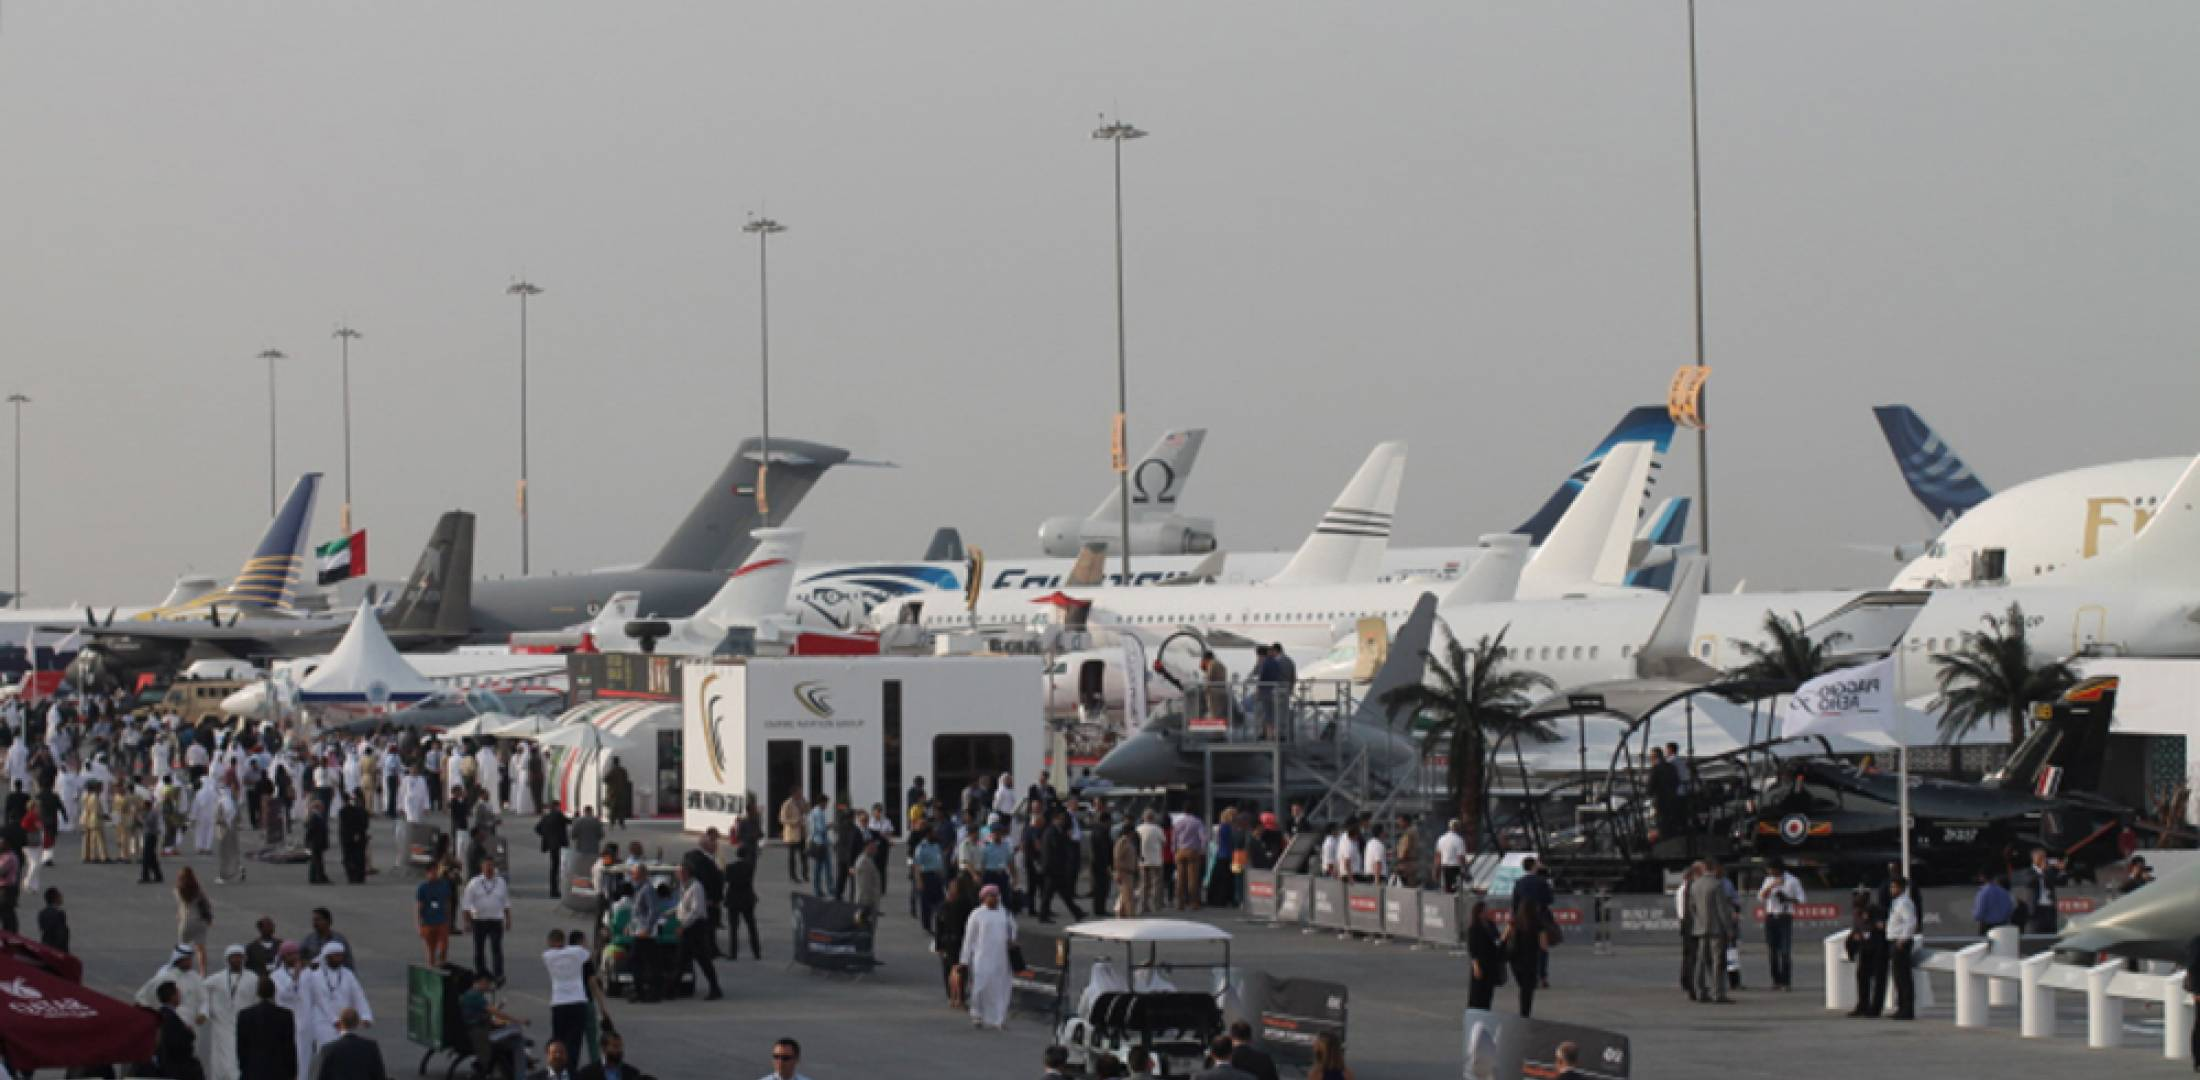 White apron dubai - The Dubai Airshow Moved To A New Venue But Looked Much The Same Heavy Rain Forced Cancellation Of The Last Day Photo Chris Pocock